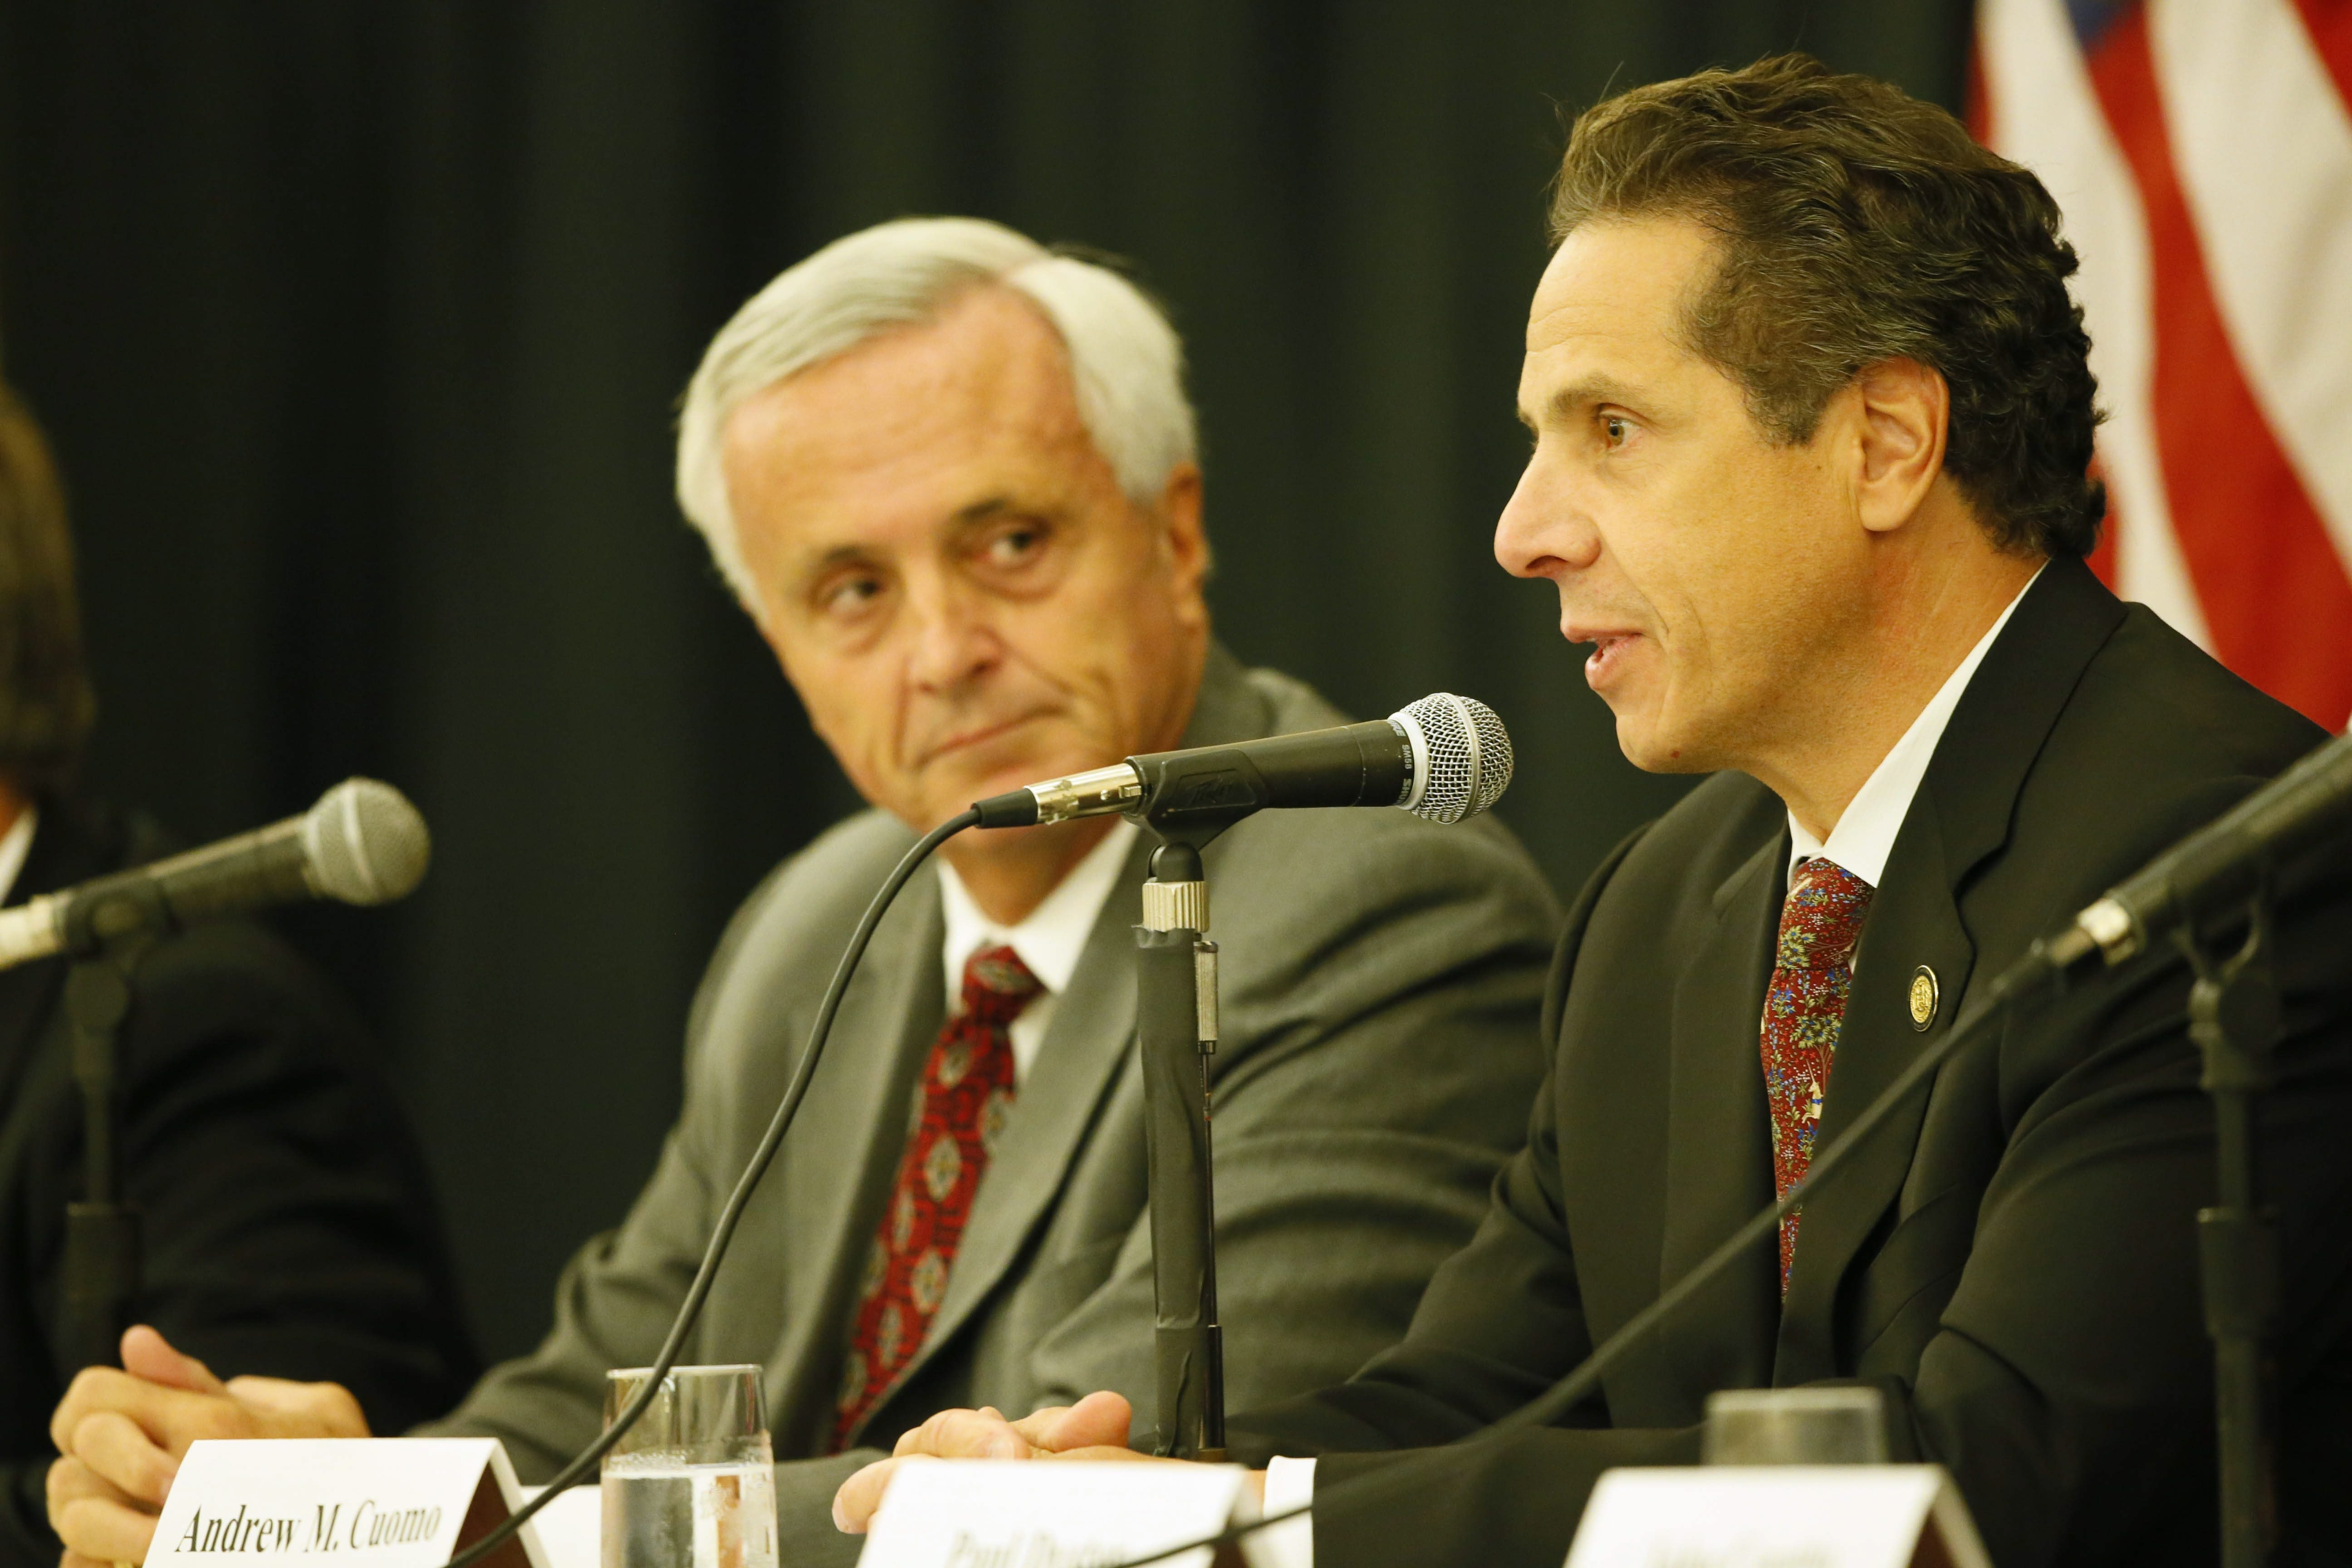 Gov. Andrew M. Cuomo, joined by developer Mark E. Hamister, speaks at news conference announcing an agreement on stalled hotel project in Niagara Falls.